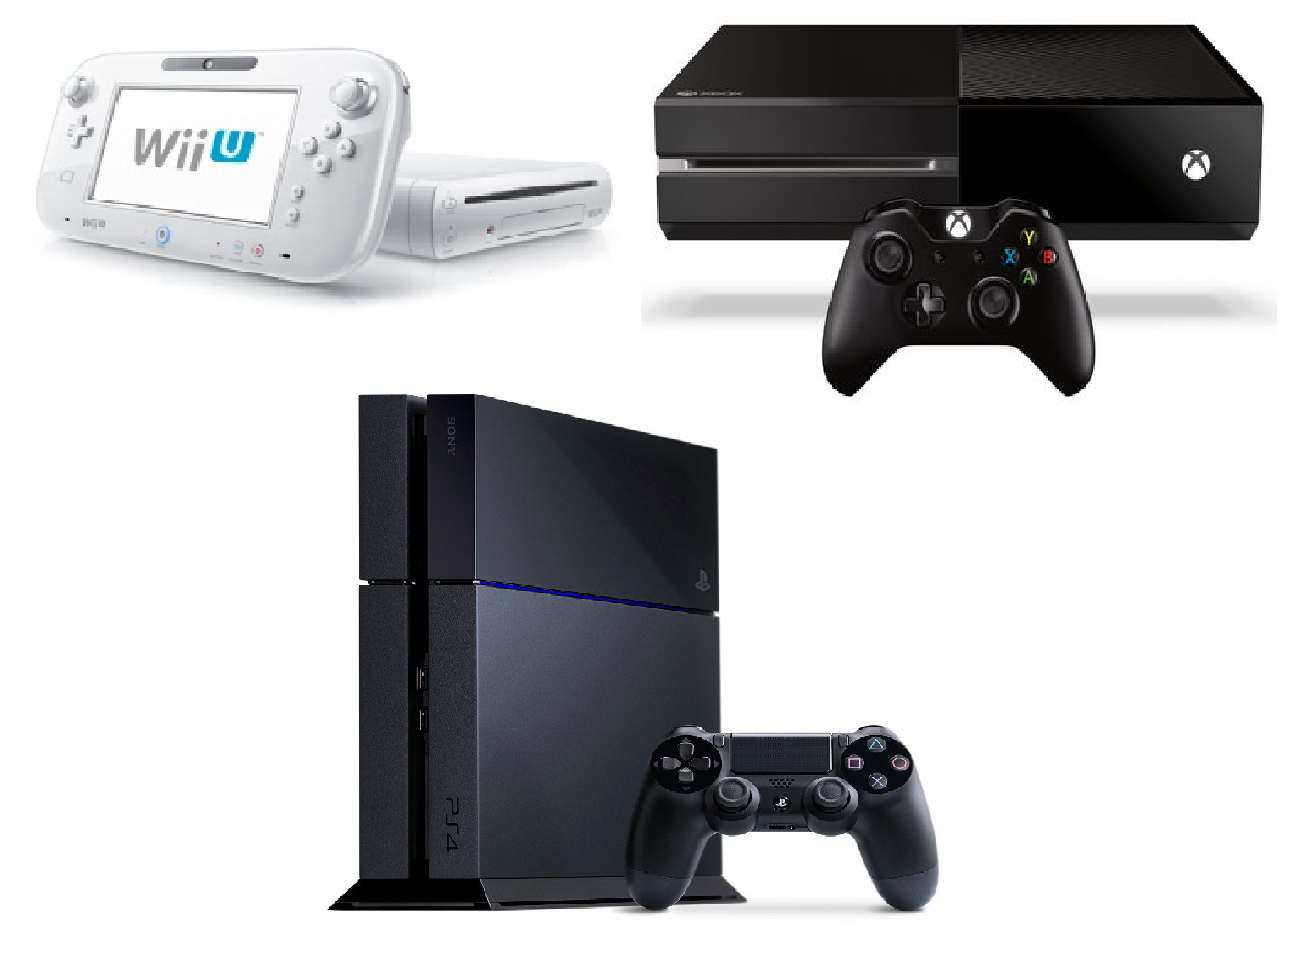 Console Wars Png 1302 956 Game Console Ps4 Or Xbox One Xbox One